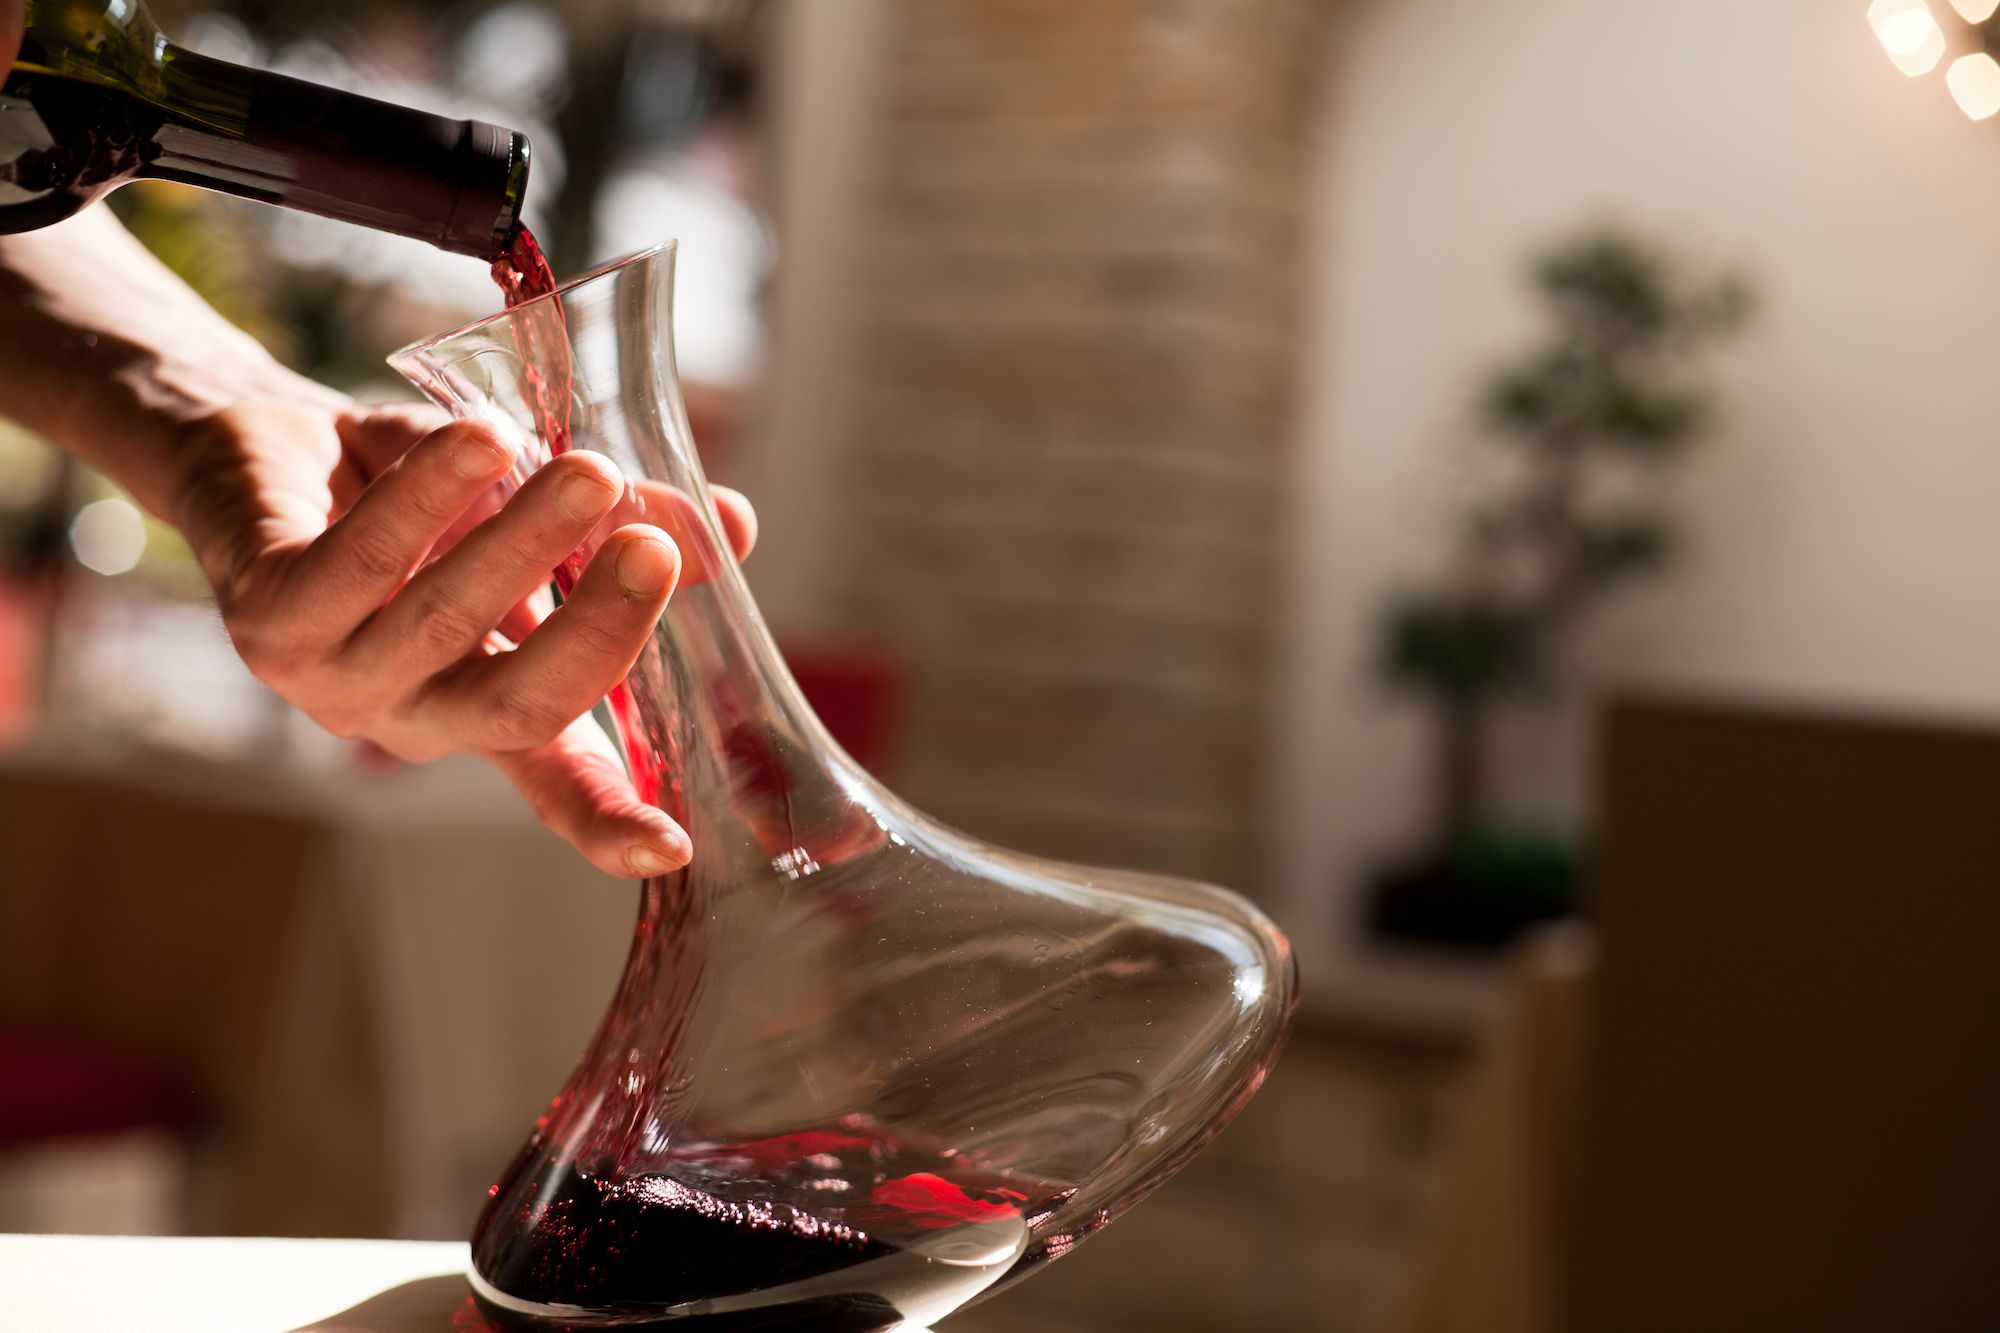 What You Need To Know About Wine Decanters, Plus 5 Shapes to Try